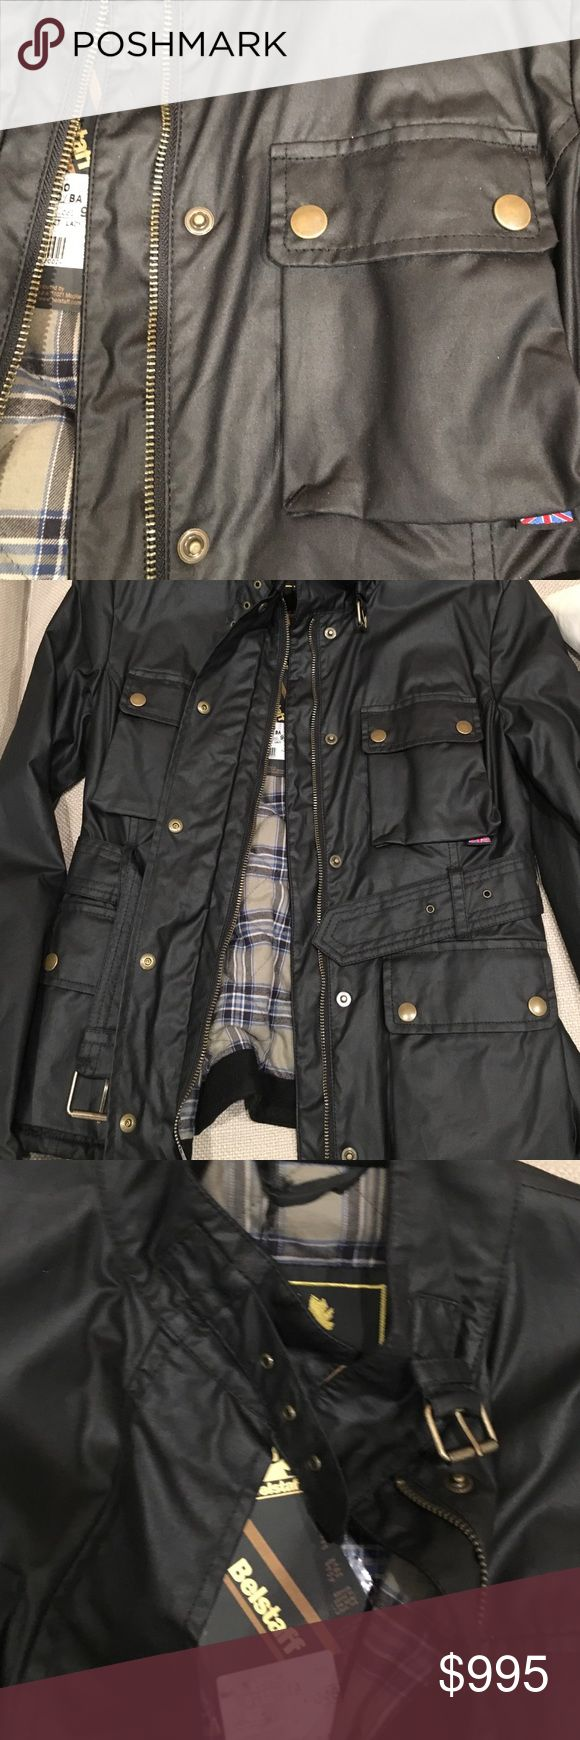 Additional pictures Belstaff Jacket Additional pictures Belstaff Jacket Belstaff Jackets & Coats Utility Jackets